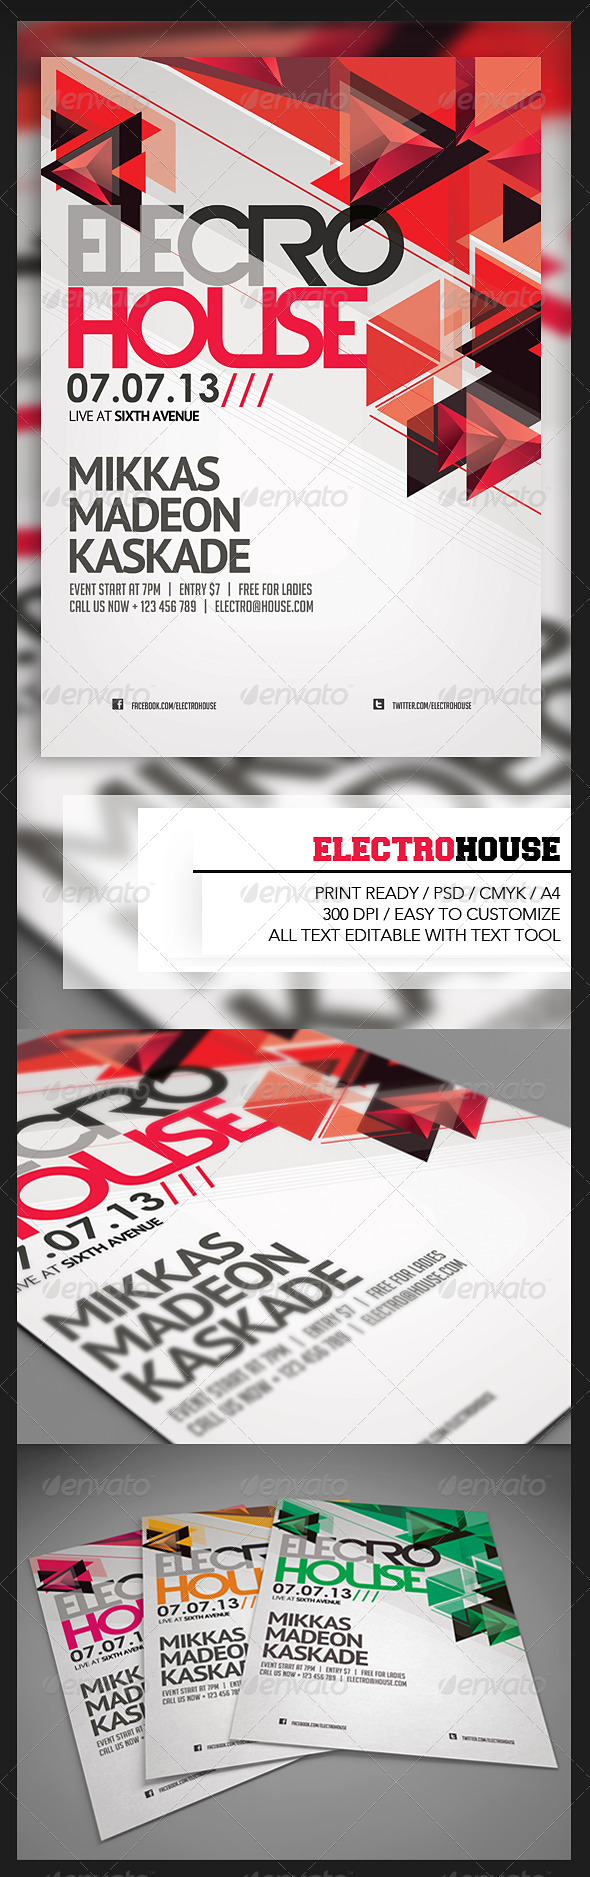 GraphicRiver Electro House Flyer 4897610